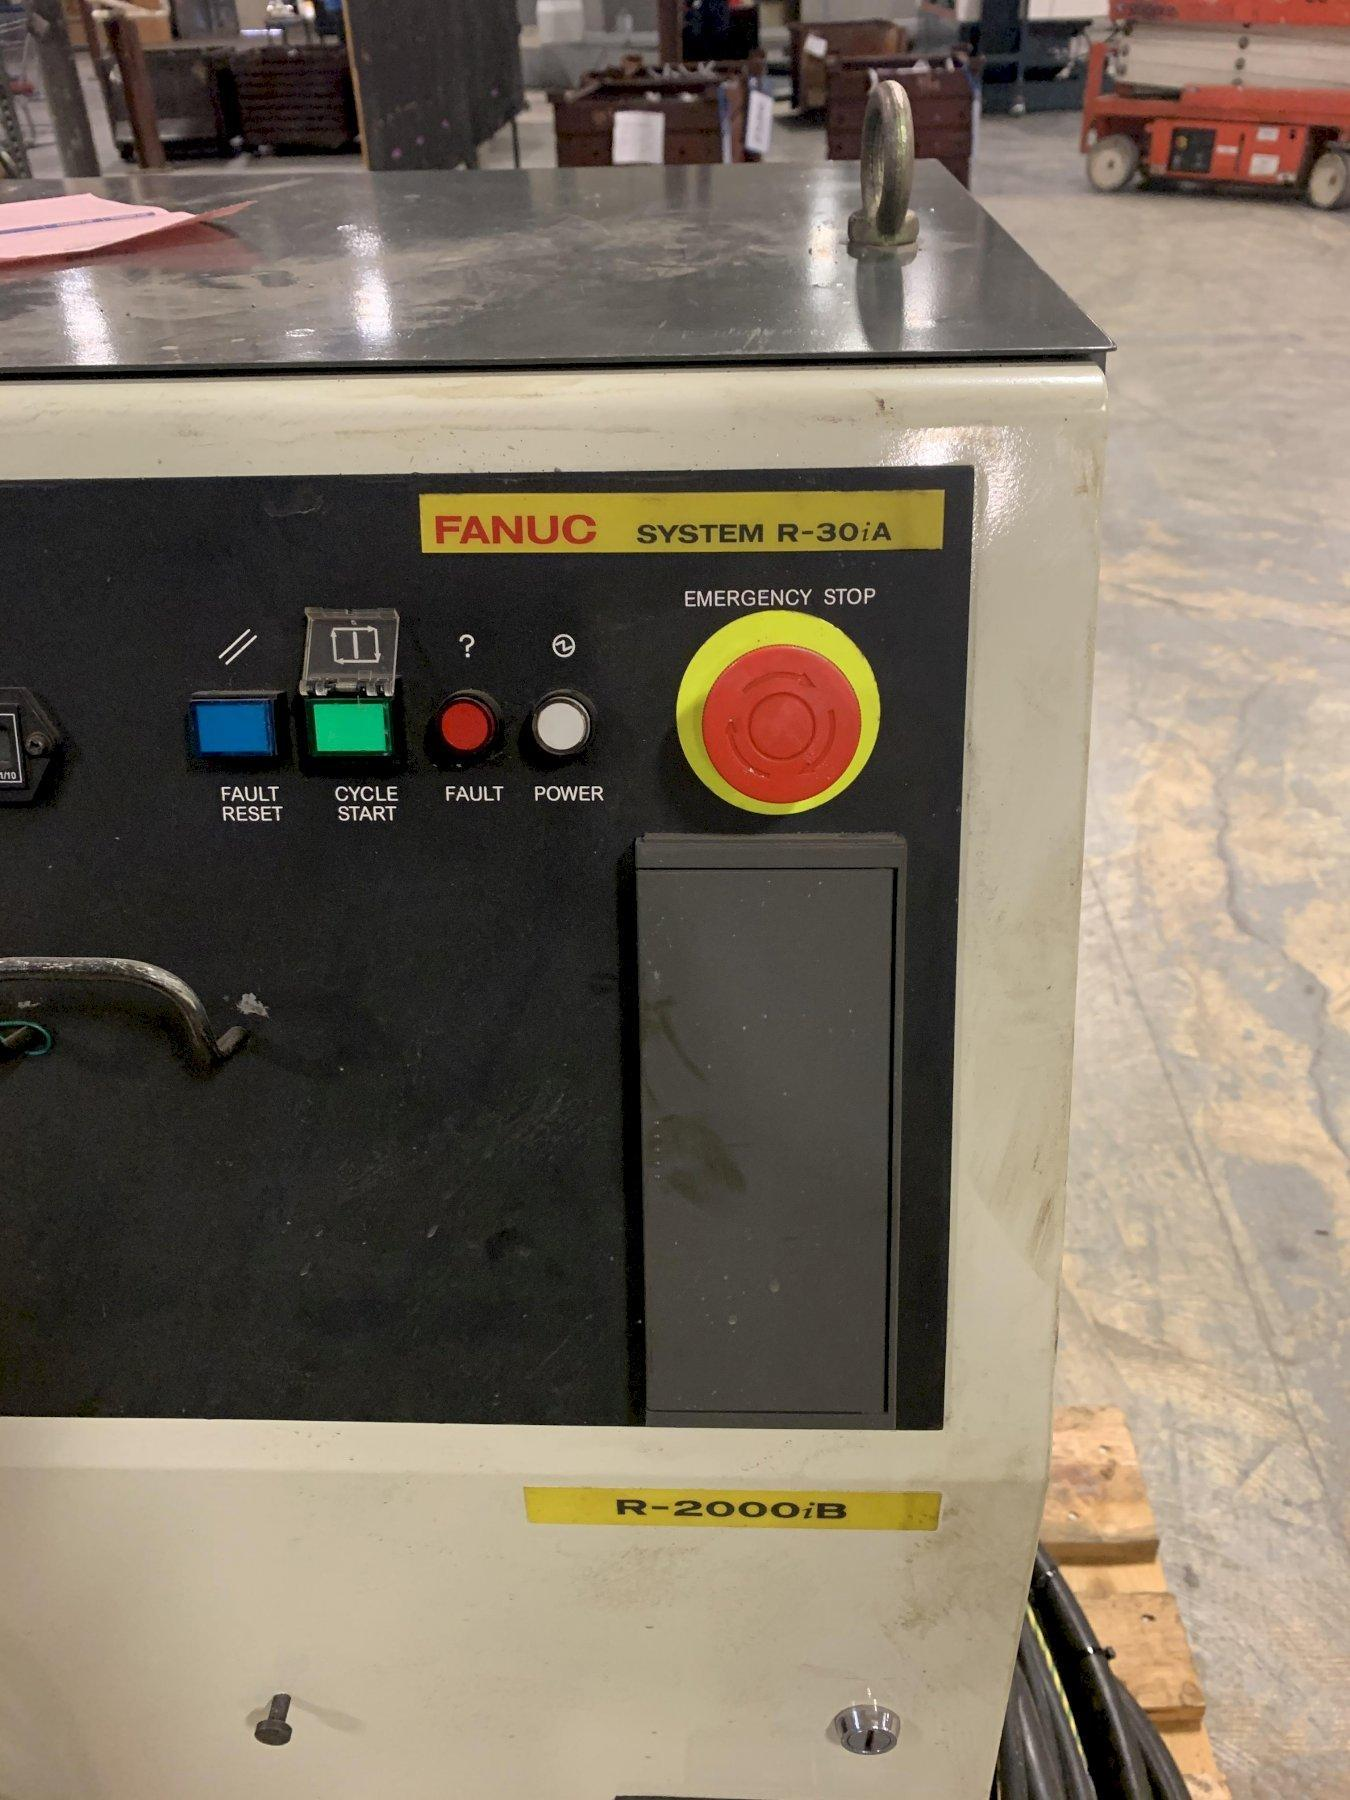 FANUC ROBOT WITH READY SOFTWARE LOADED AND PENDENT Integrate Colombo Spindle Colombo Spindle Motor - RC 110/22 5AX HSK-F 63 CR PD to Fanuc R2000 Robot with all necessary electronic and pneumatic components., Variable speed Drive, allen bradley plc. Tool Tree for up to 5 different tools